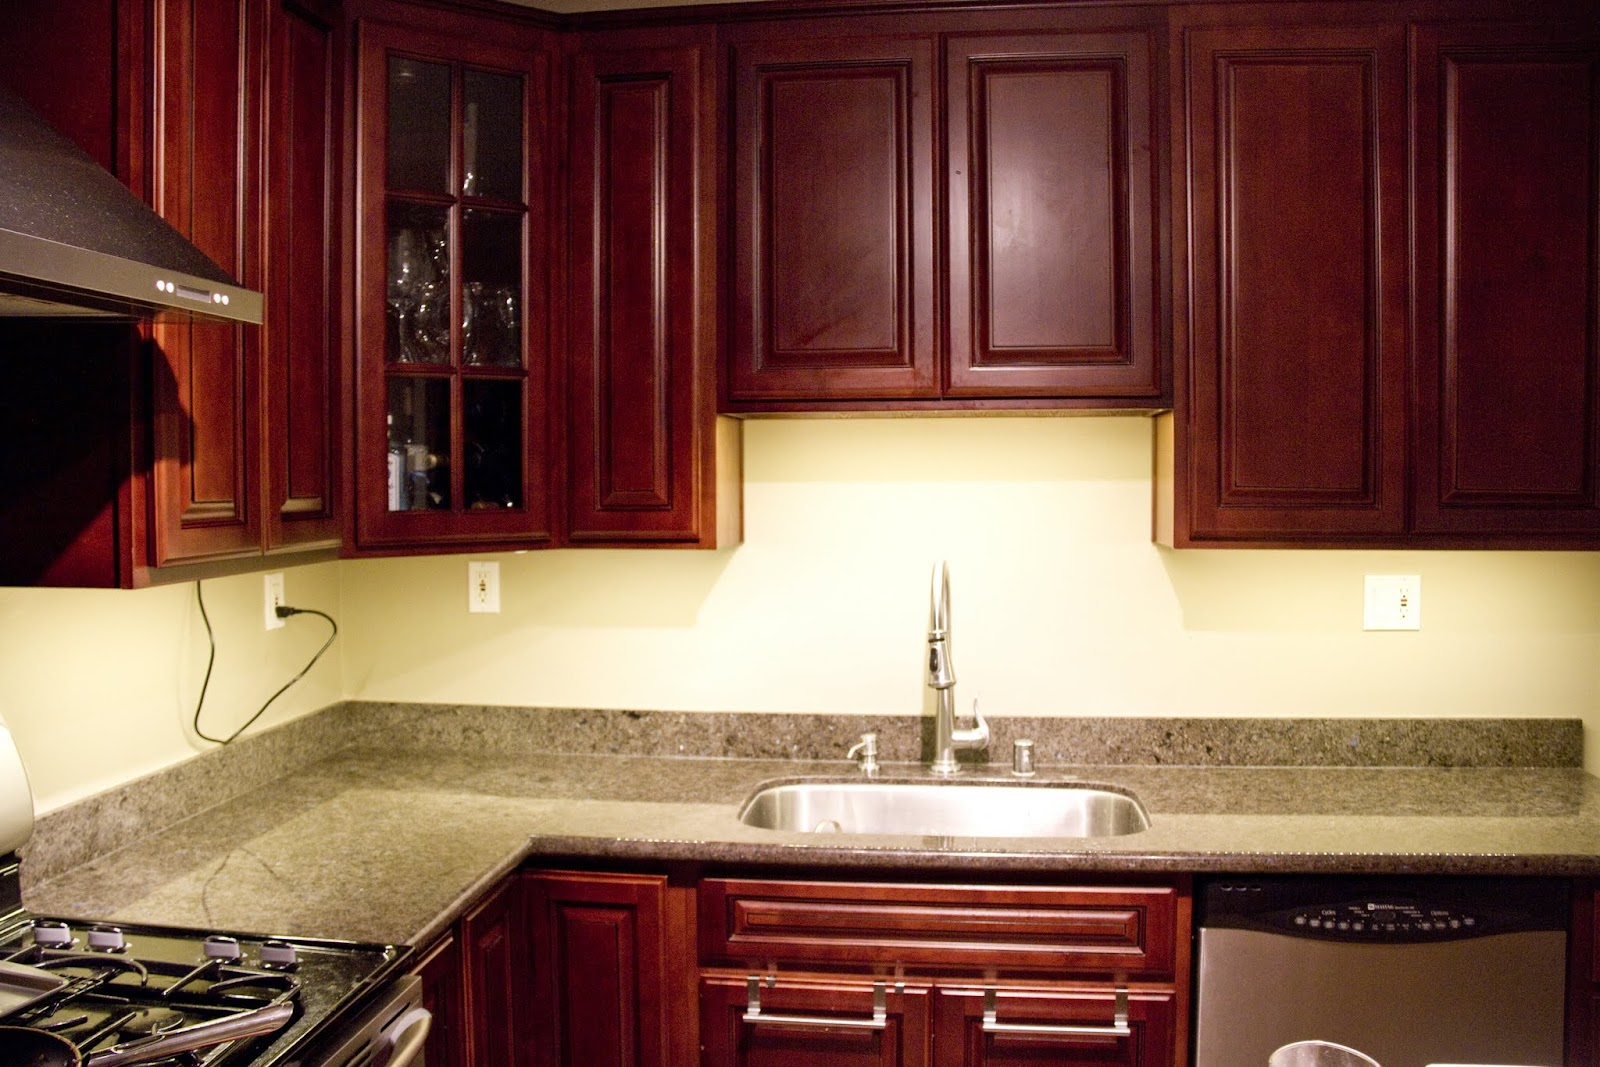 Kitchen Cabinets Under Lighting Swingncocoa Under Cabinet Lighting